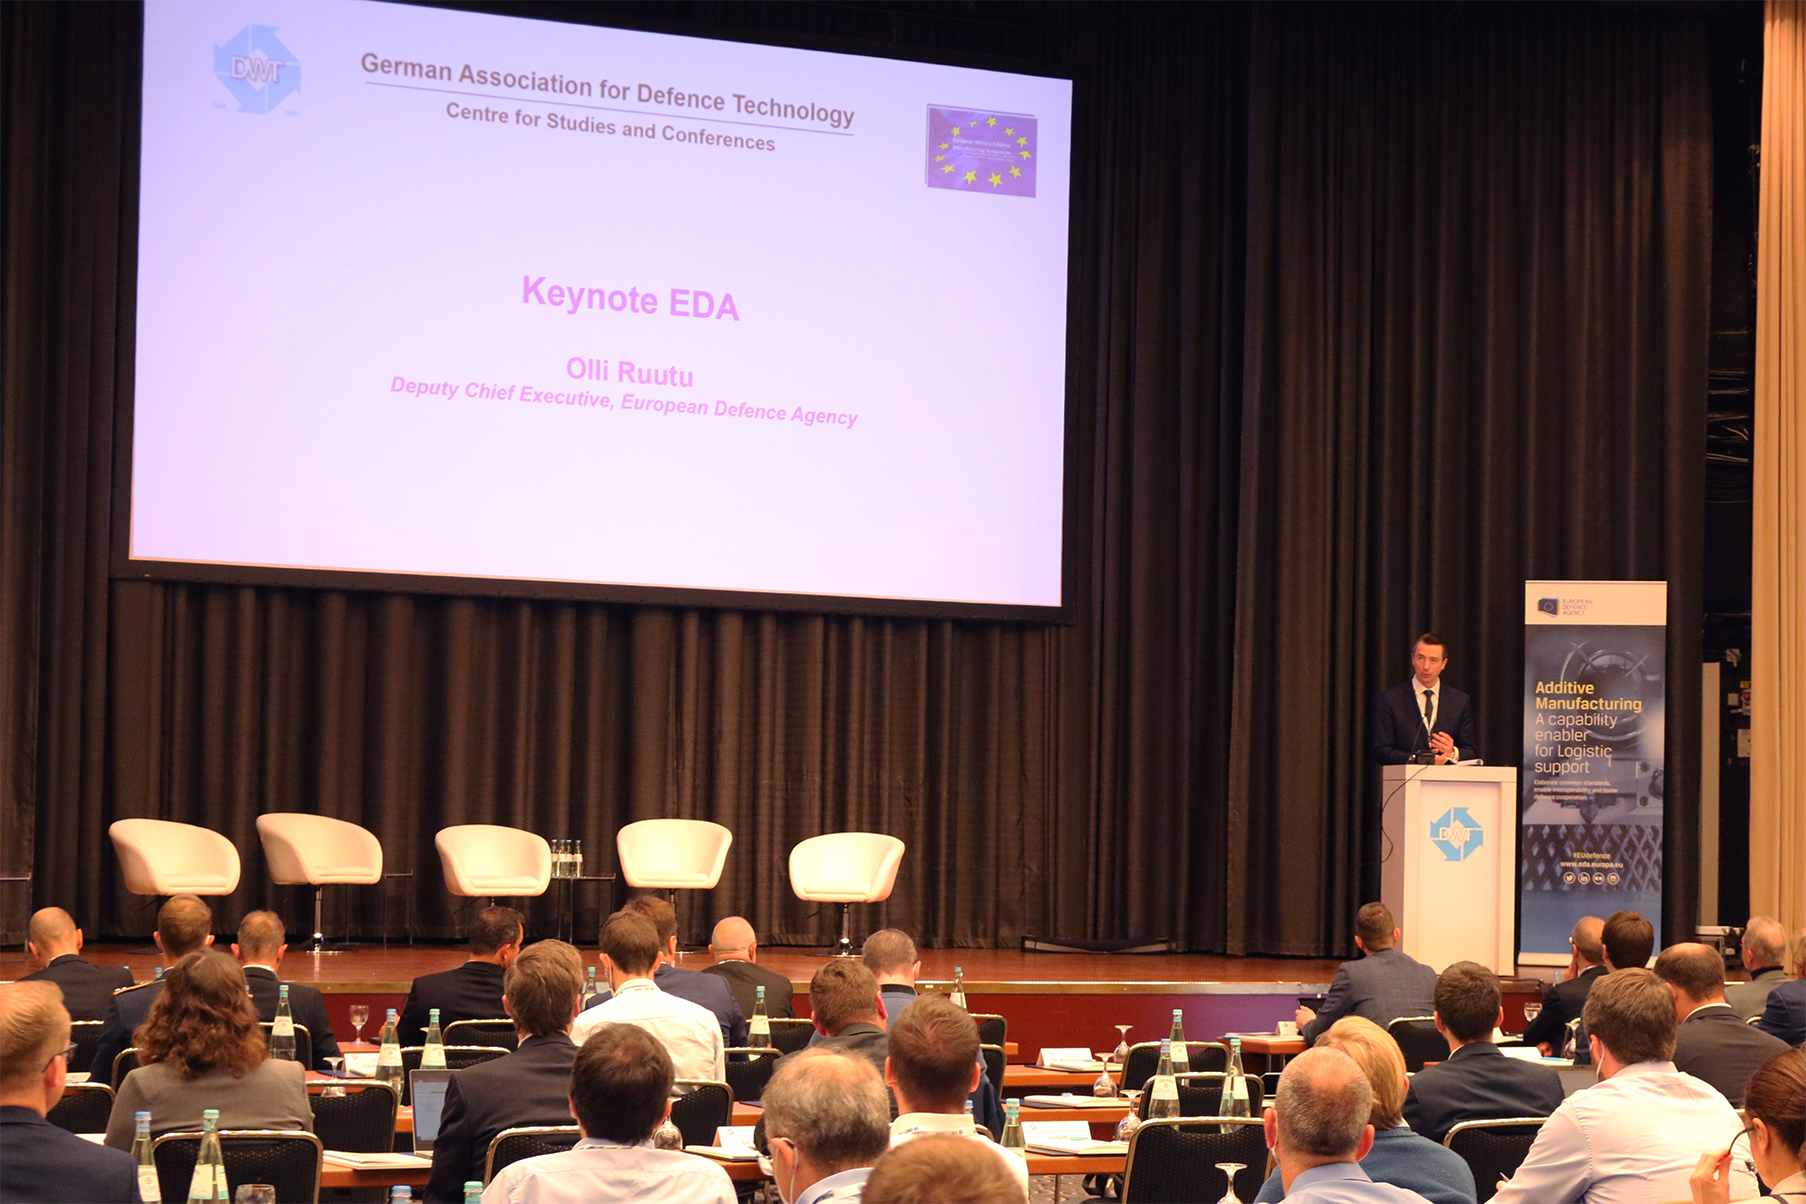 Additive Manufacturing's impact on military logistics yet to be fully embraced conference hears